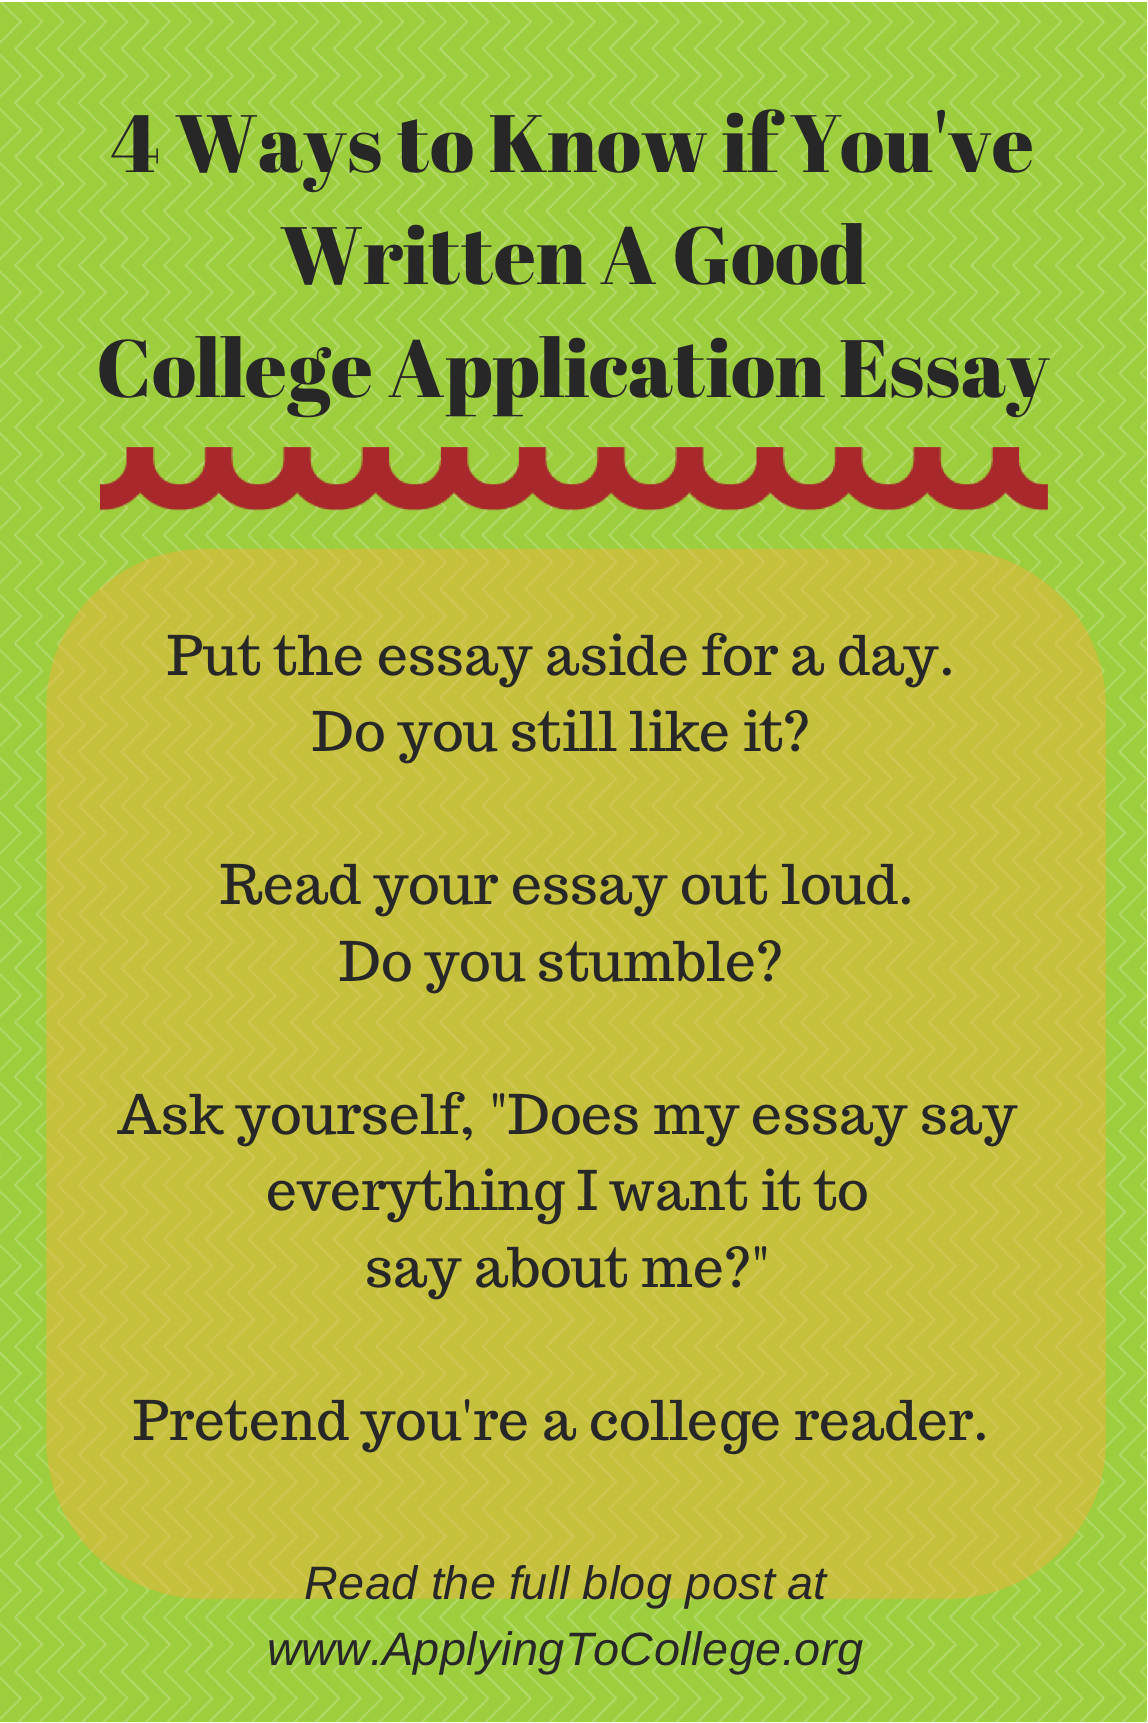 019 Tips To Write Good Essay Example 4ways Know If Youve Marvelous A Narrative Persuasive In Exam Full